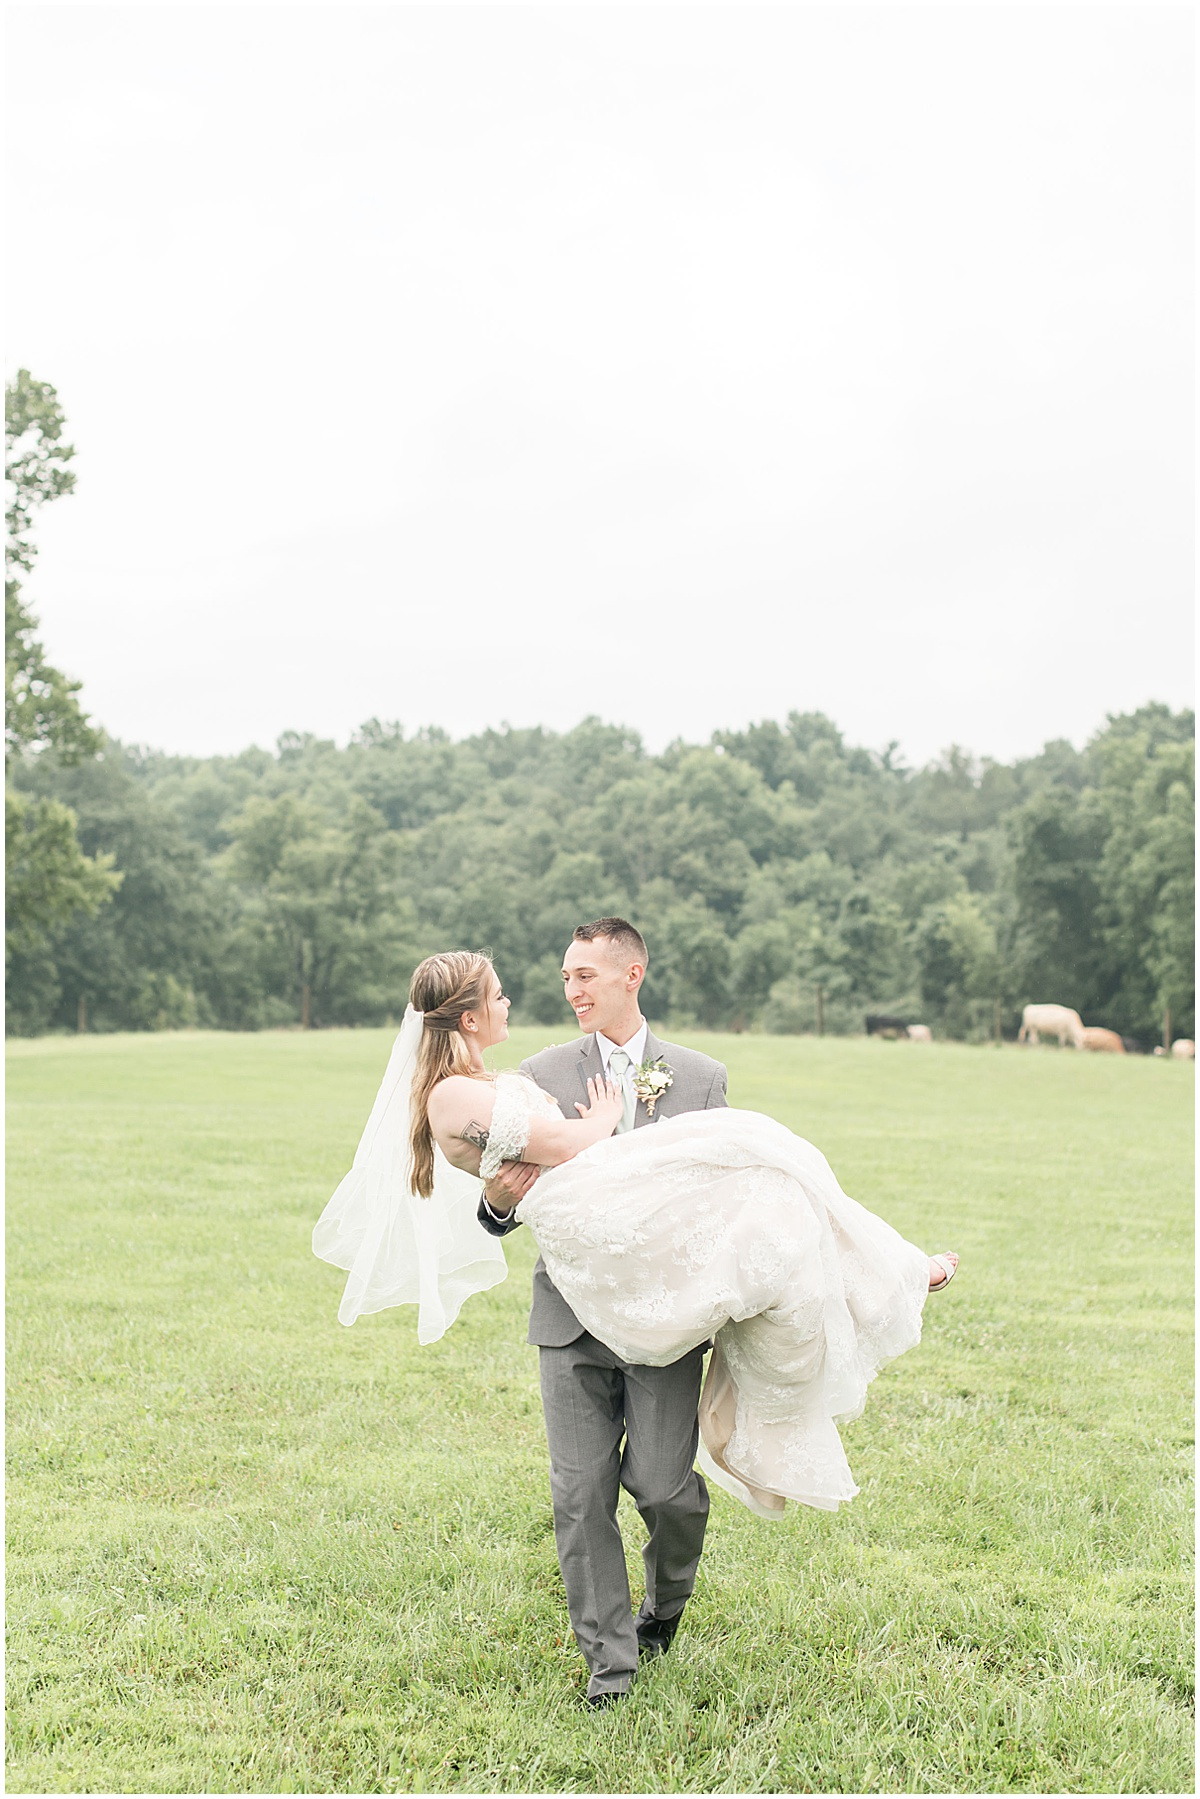 Reception after Whippoorwill Hill wedding in Bloomington, Indiana by Victoria Rayburn Photography